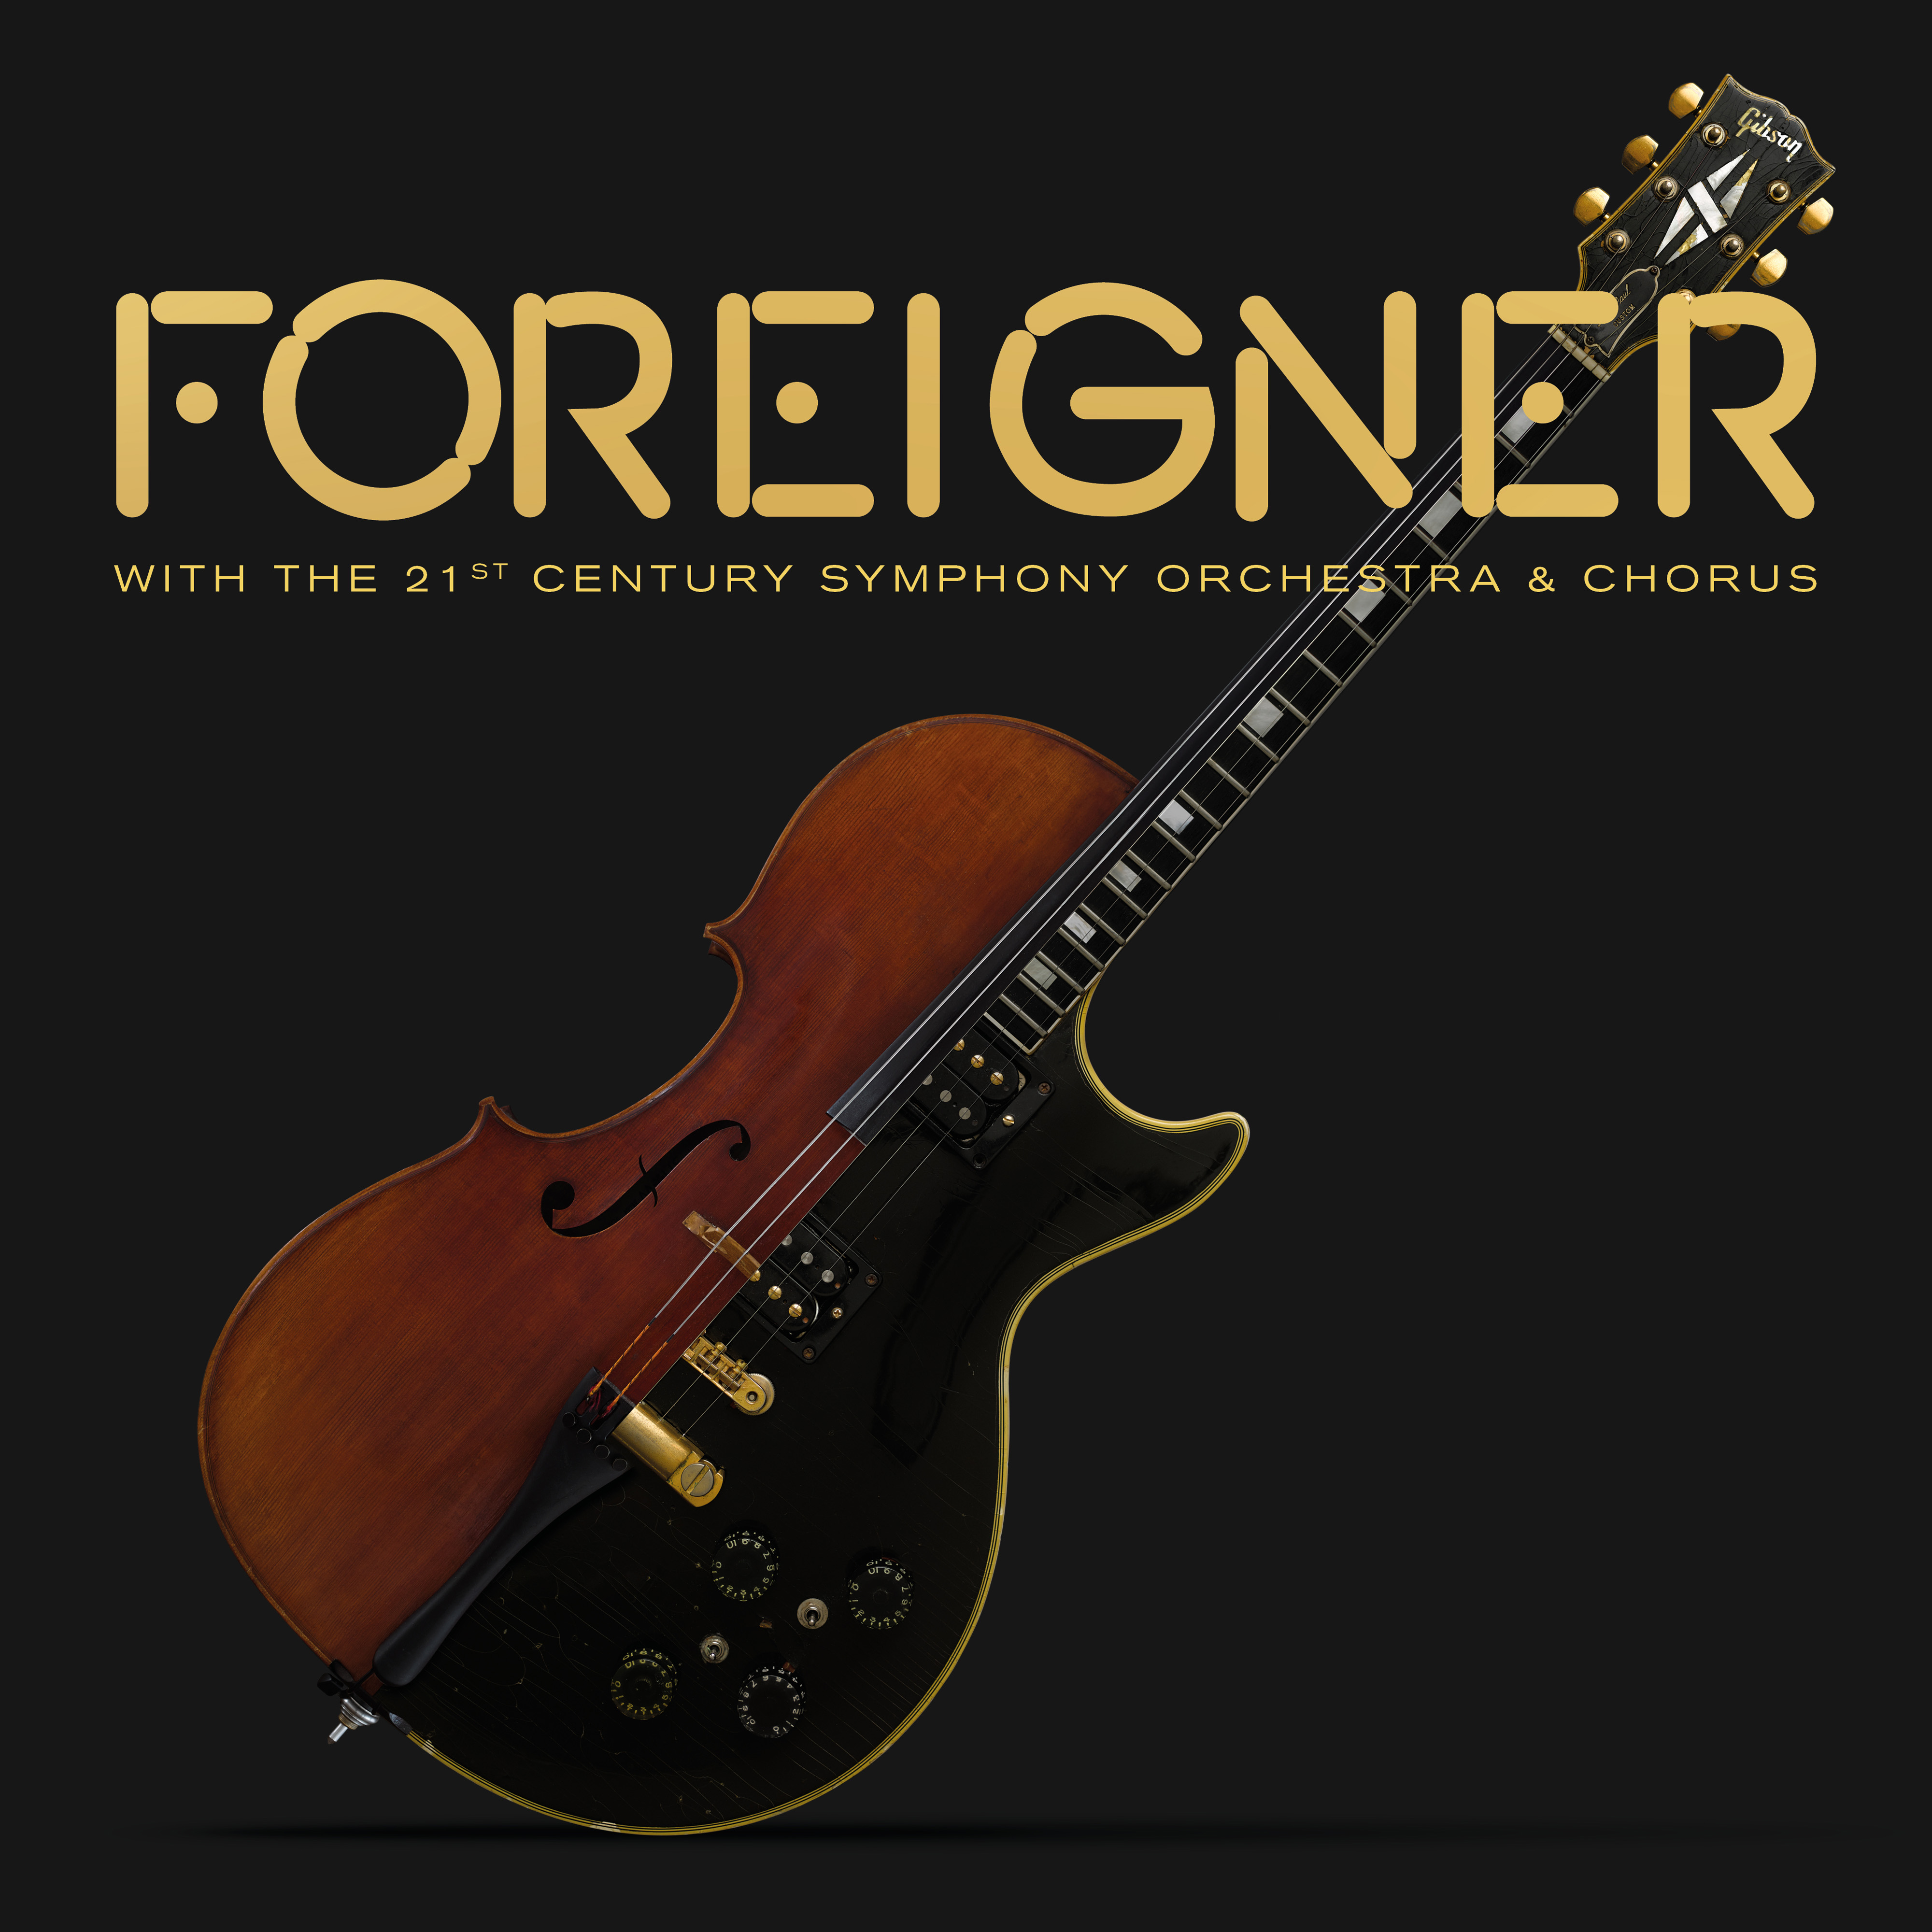 Foreigner. With the 21st Century Symphony Orchestra & Chorus (CD + DVD)